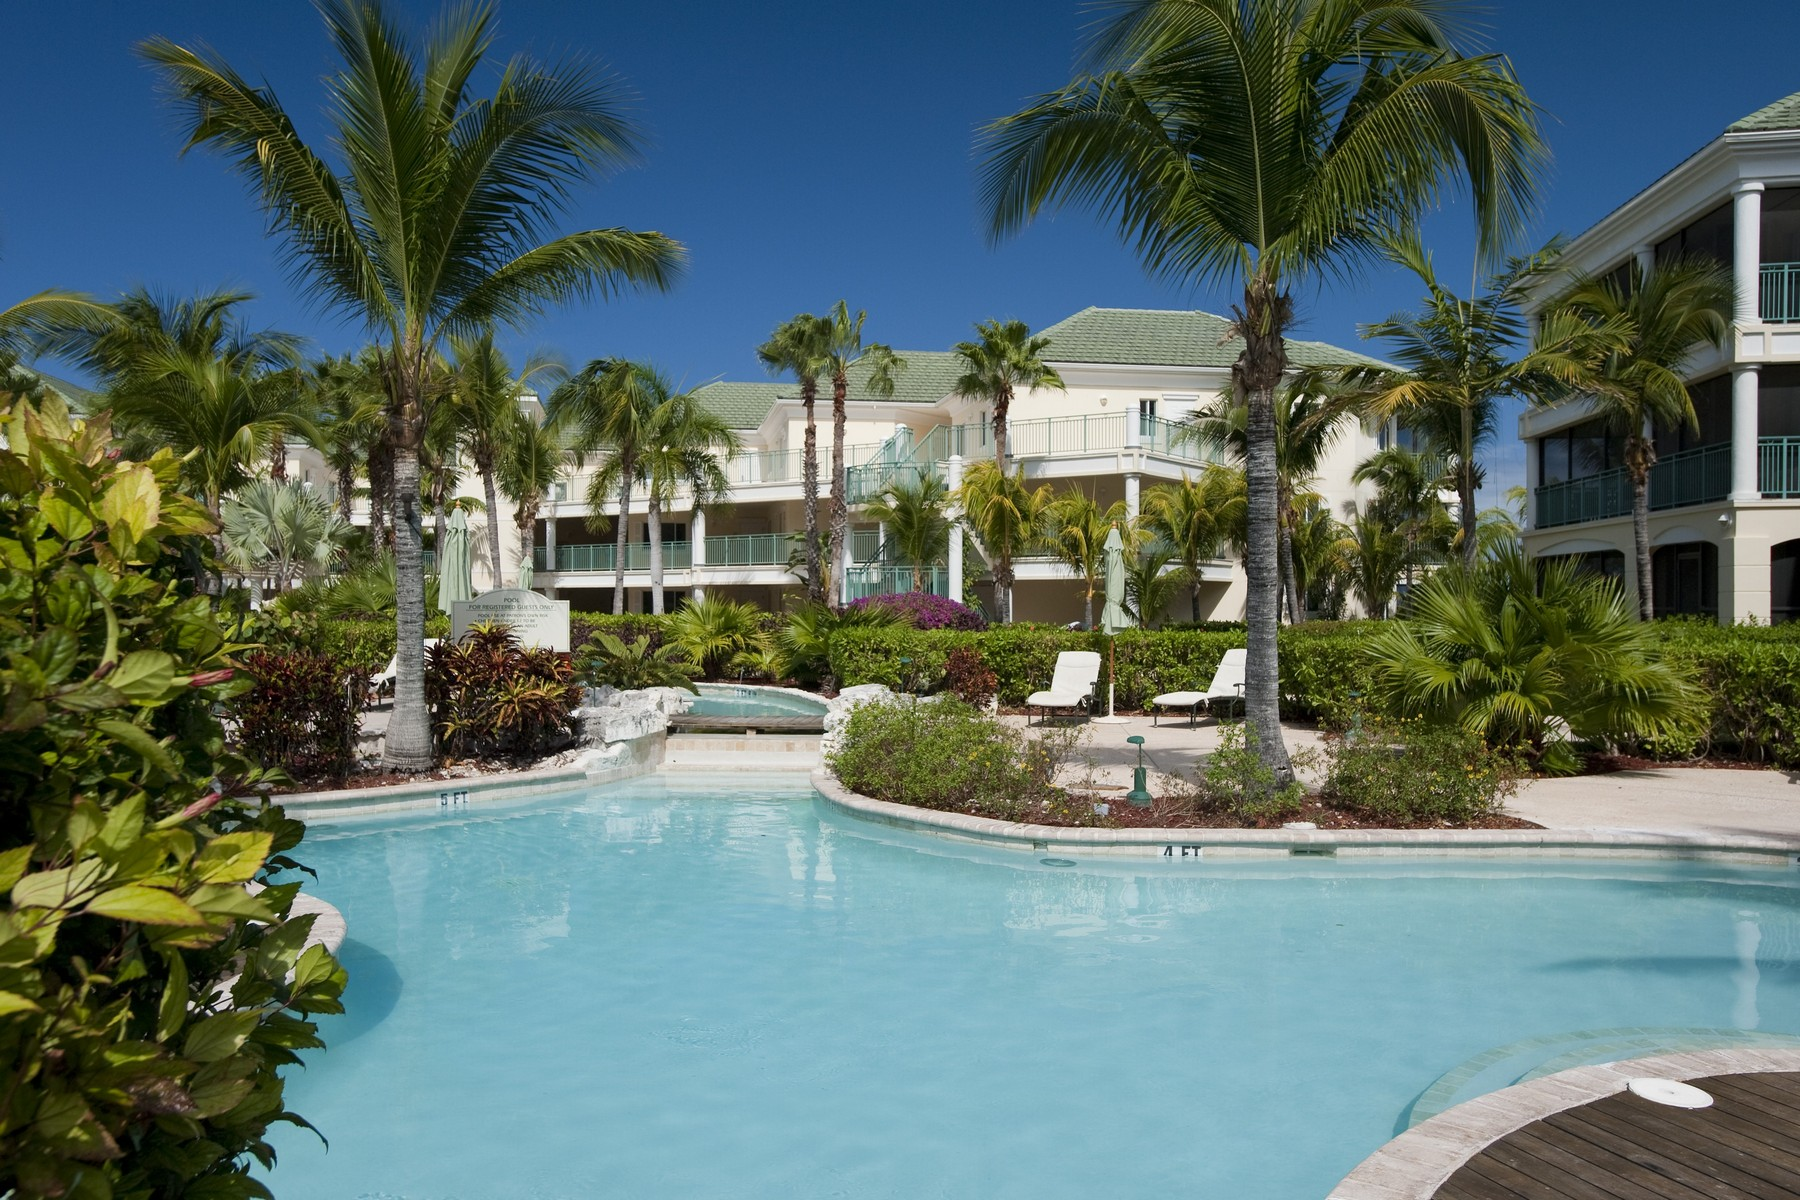 Condominium for Sale at The Sands at Grace Bay - Suite 5203 The Sands On Grace Bay, Grace Bay, Providenciales Turks And Caicos Islands